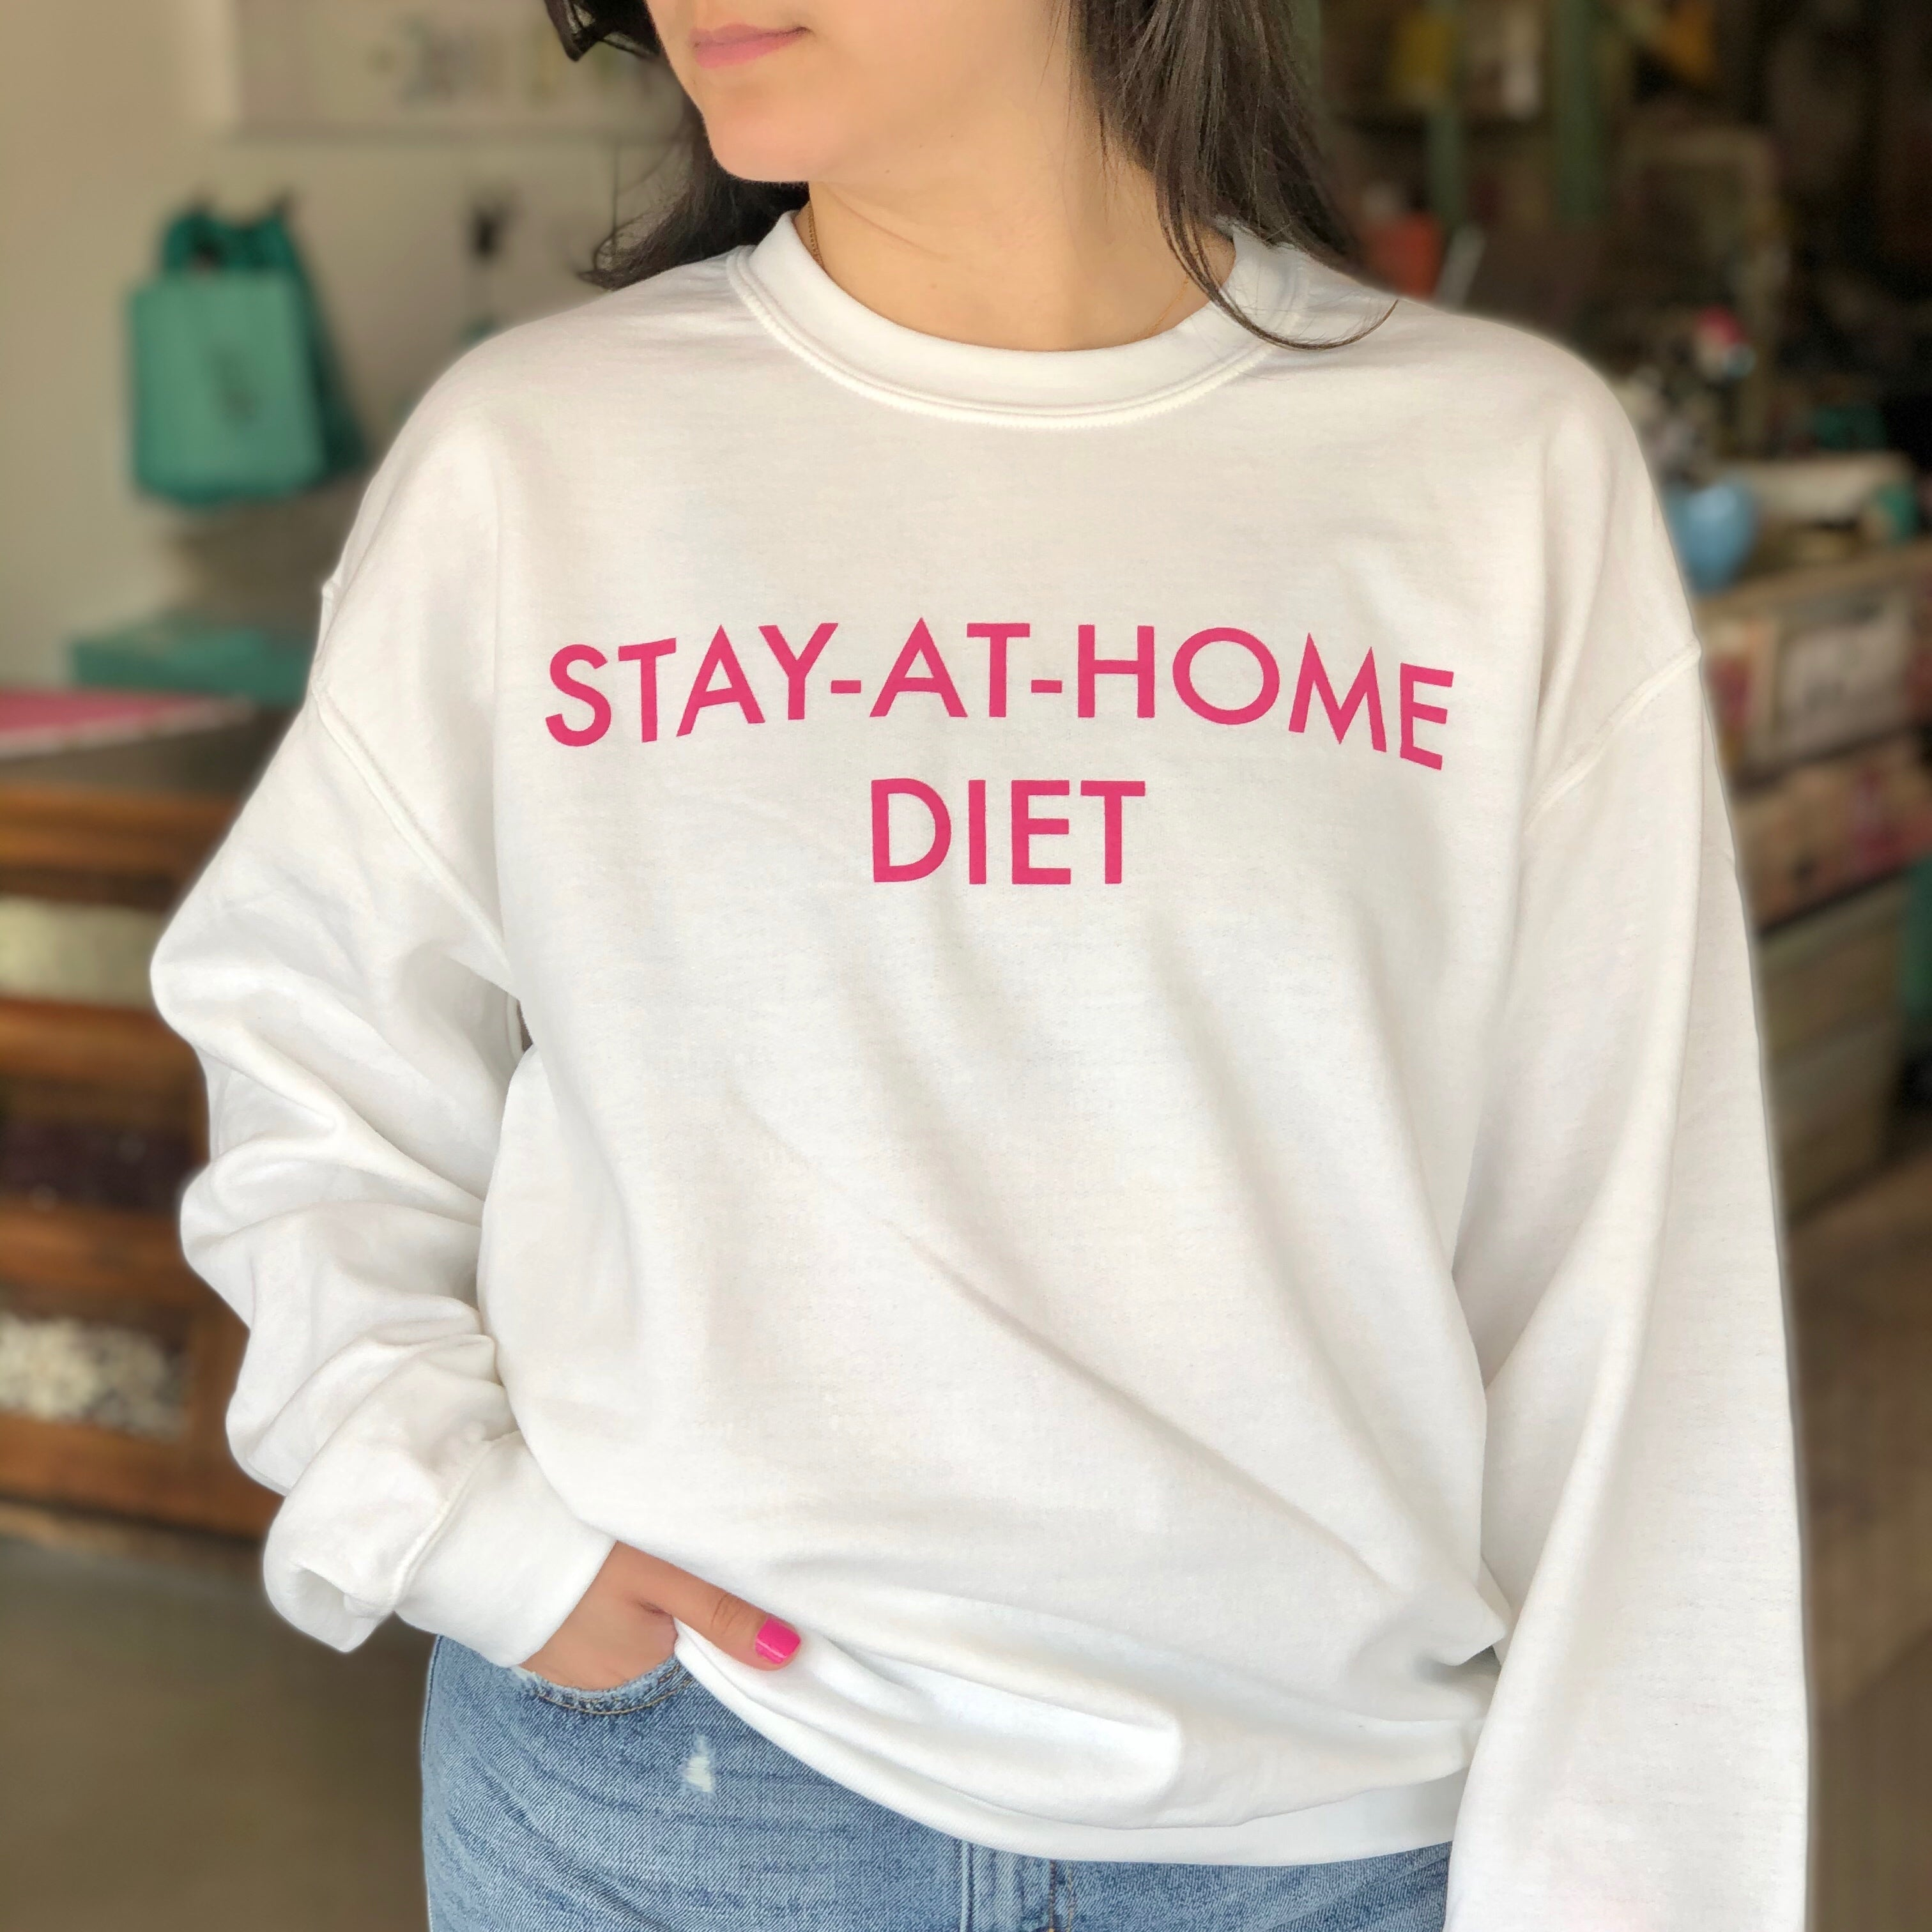 STAY AT HOME DIET WHITE SWEATSHIRT